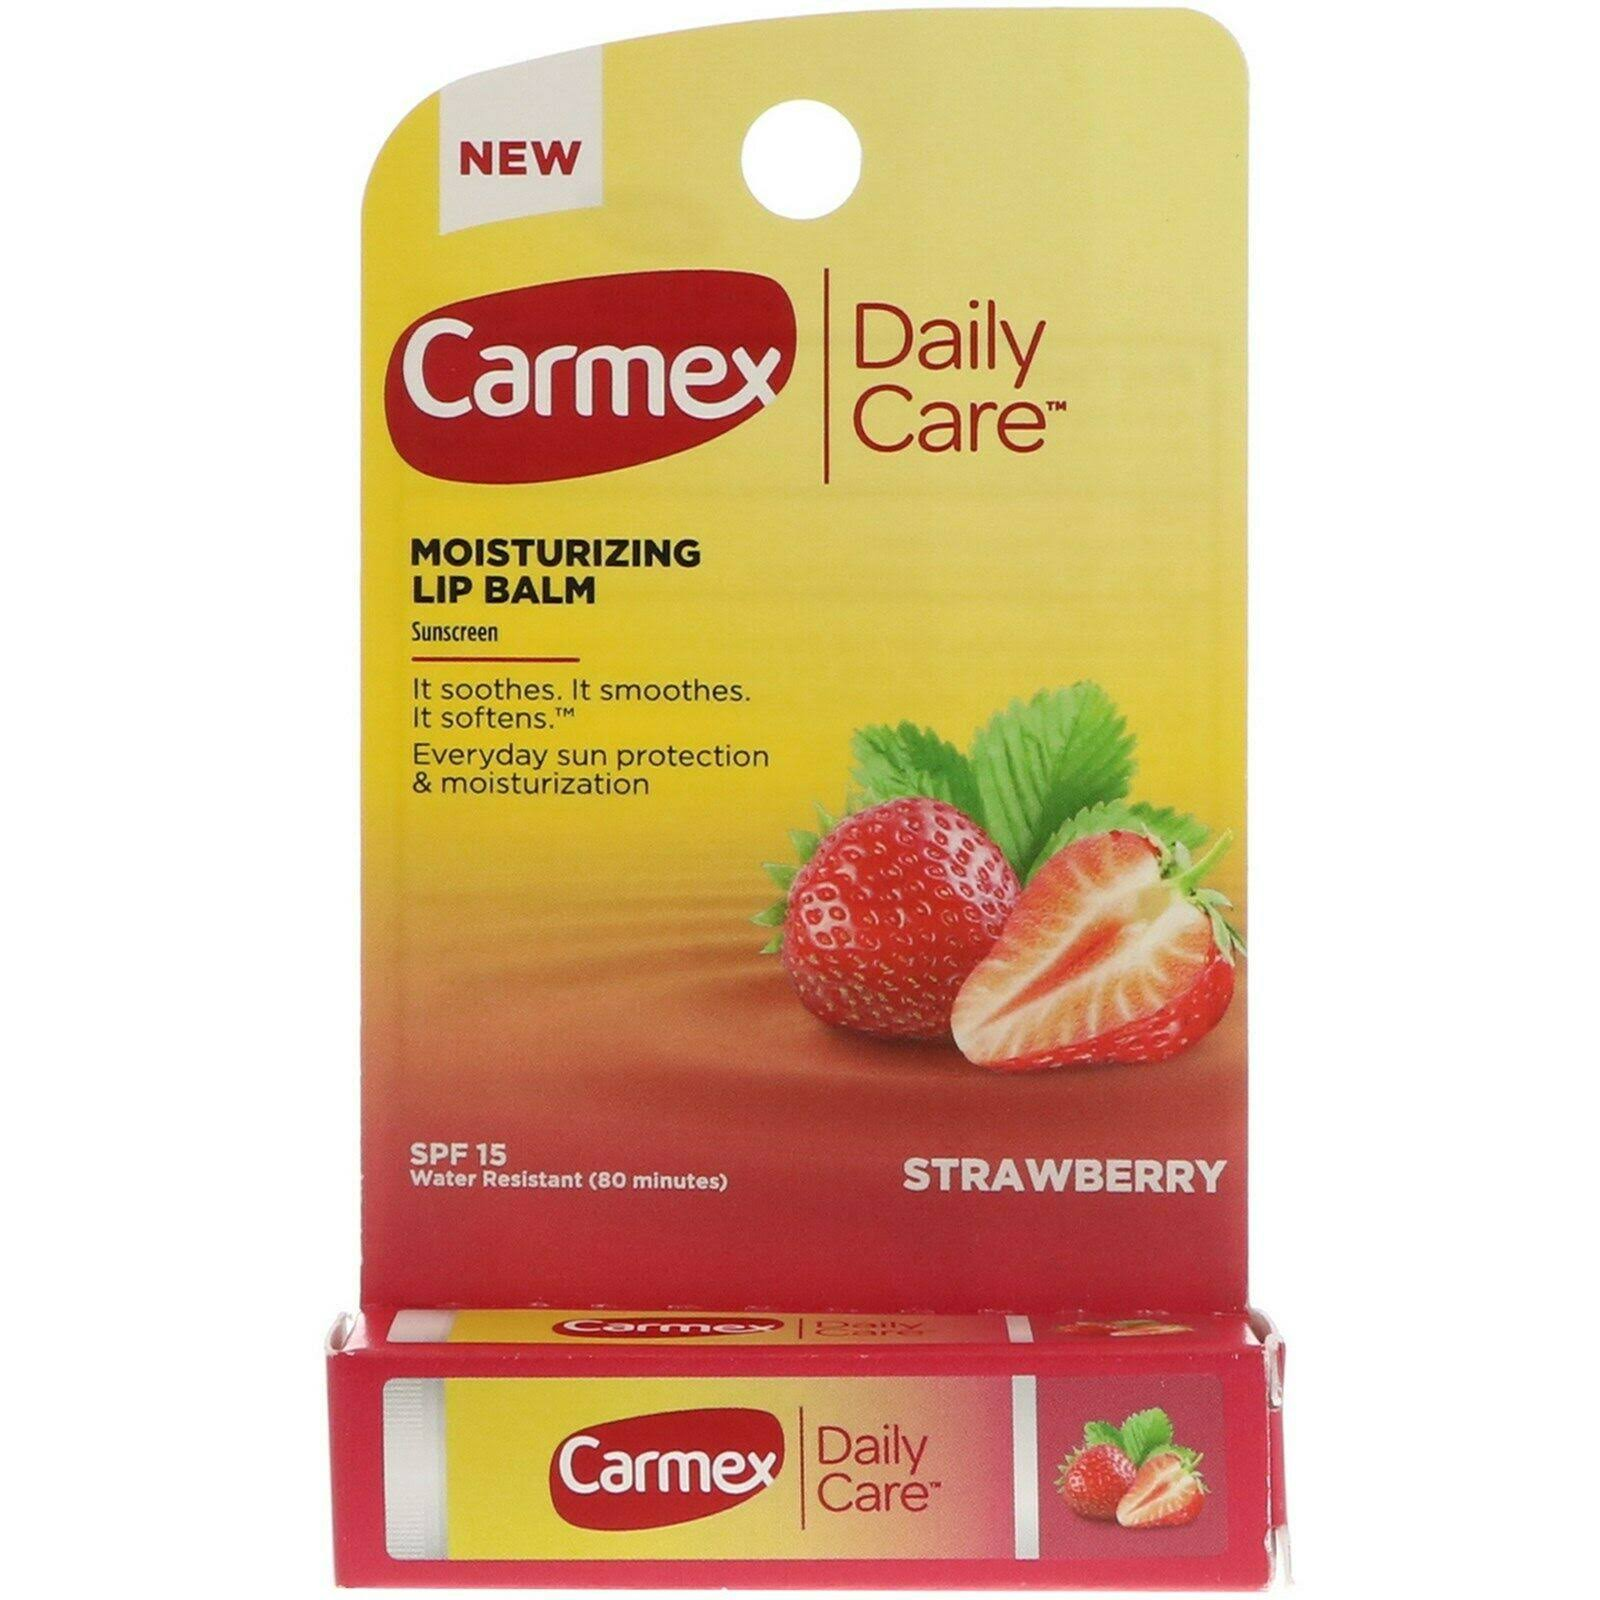 Carmex Daily Care Lip Balm - Strawberry